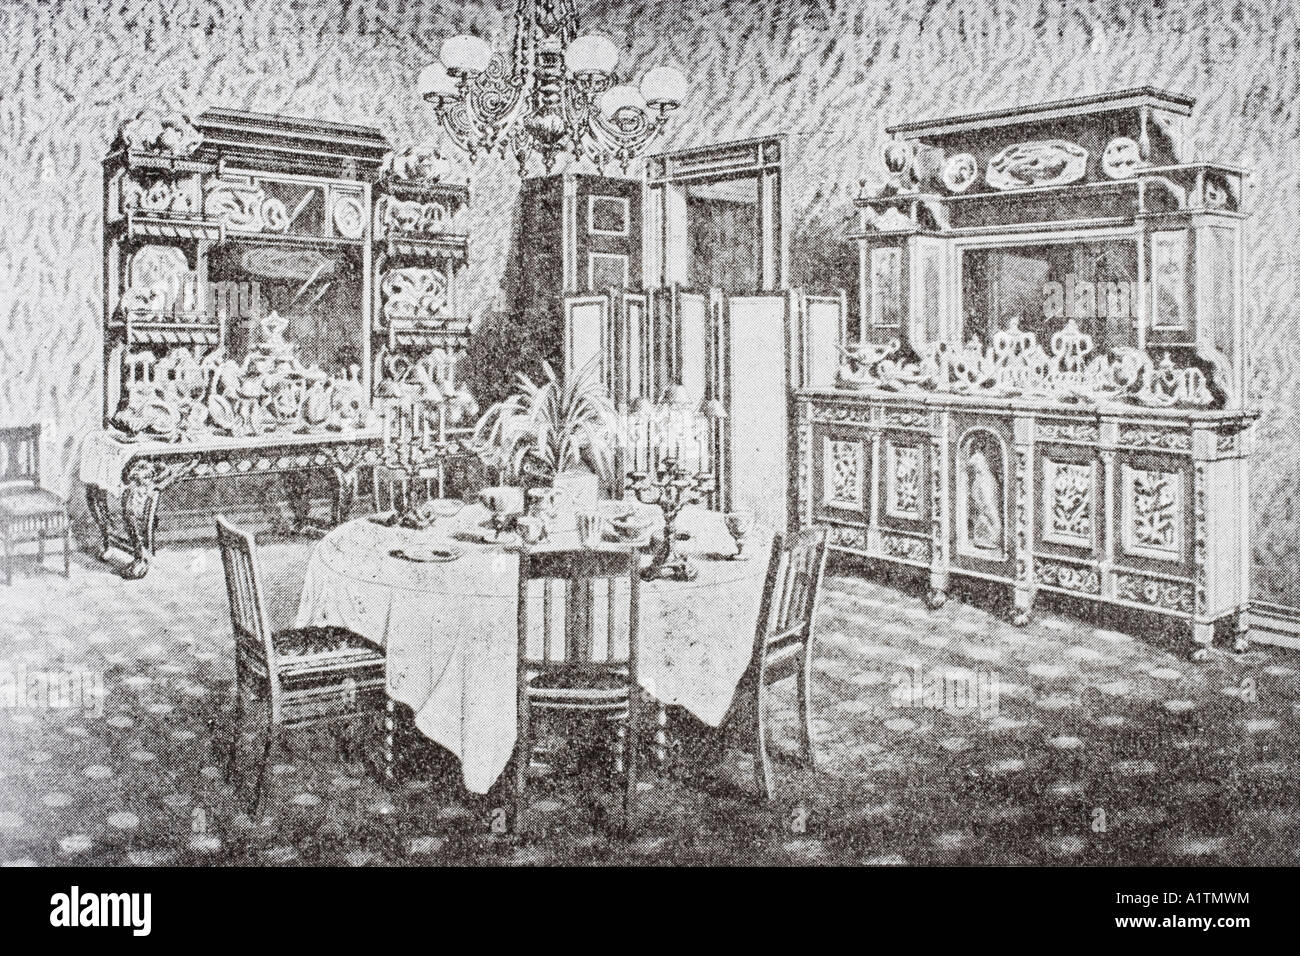 Washington DC United States of America Family dining room of The White House in 1890 s - Stock Image